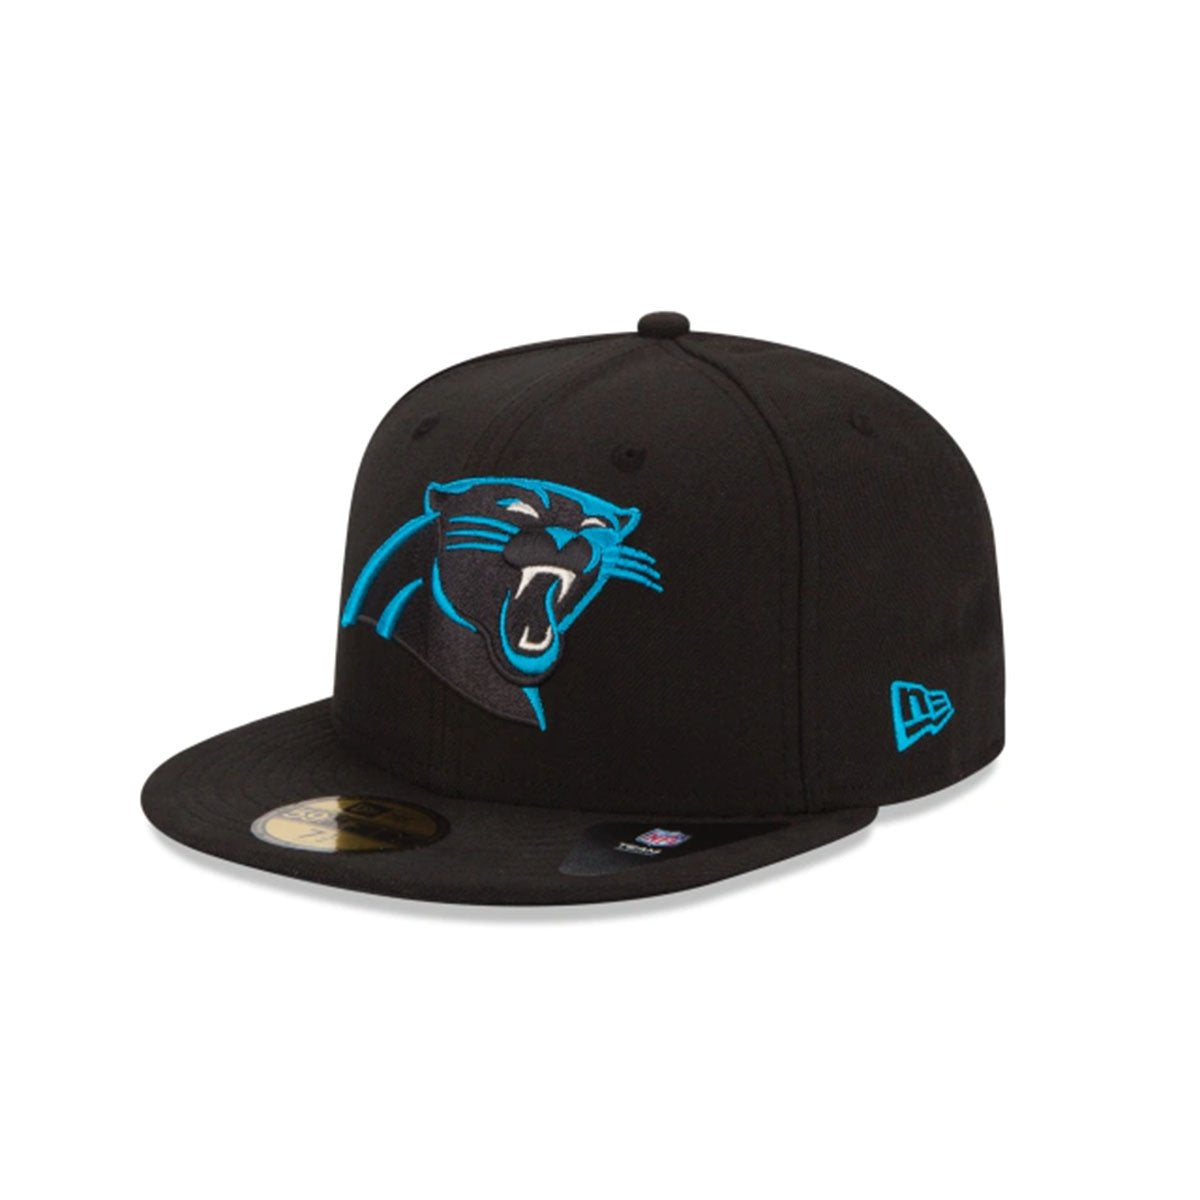 CAROLINA PANTHERS 59FIFTY FITTED BLACK/BLUE